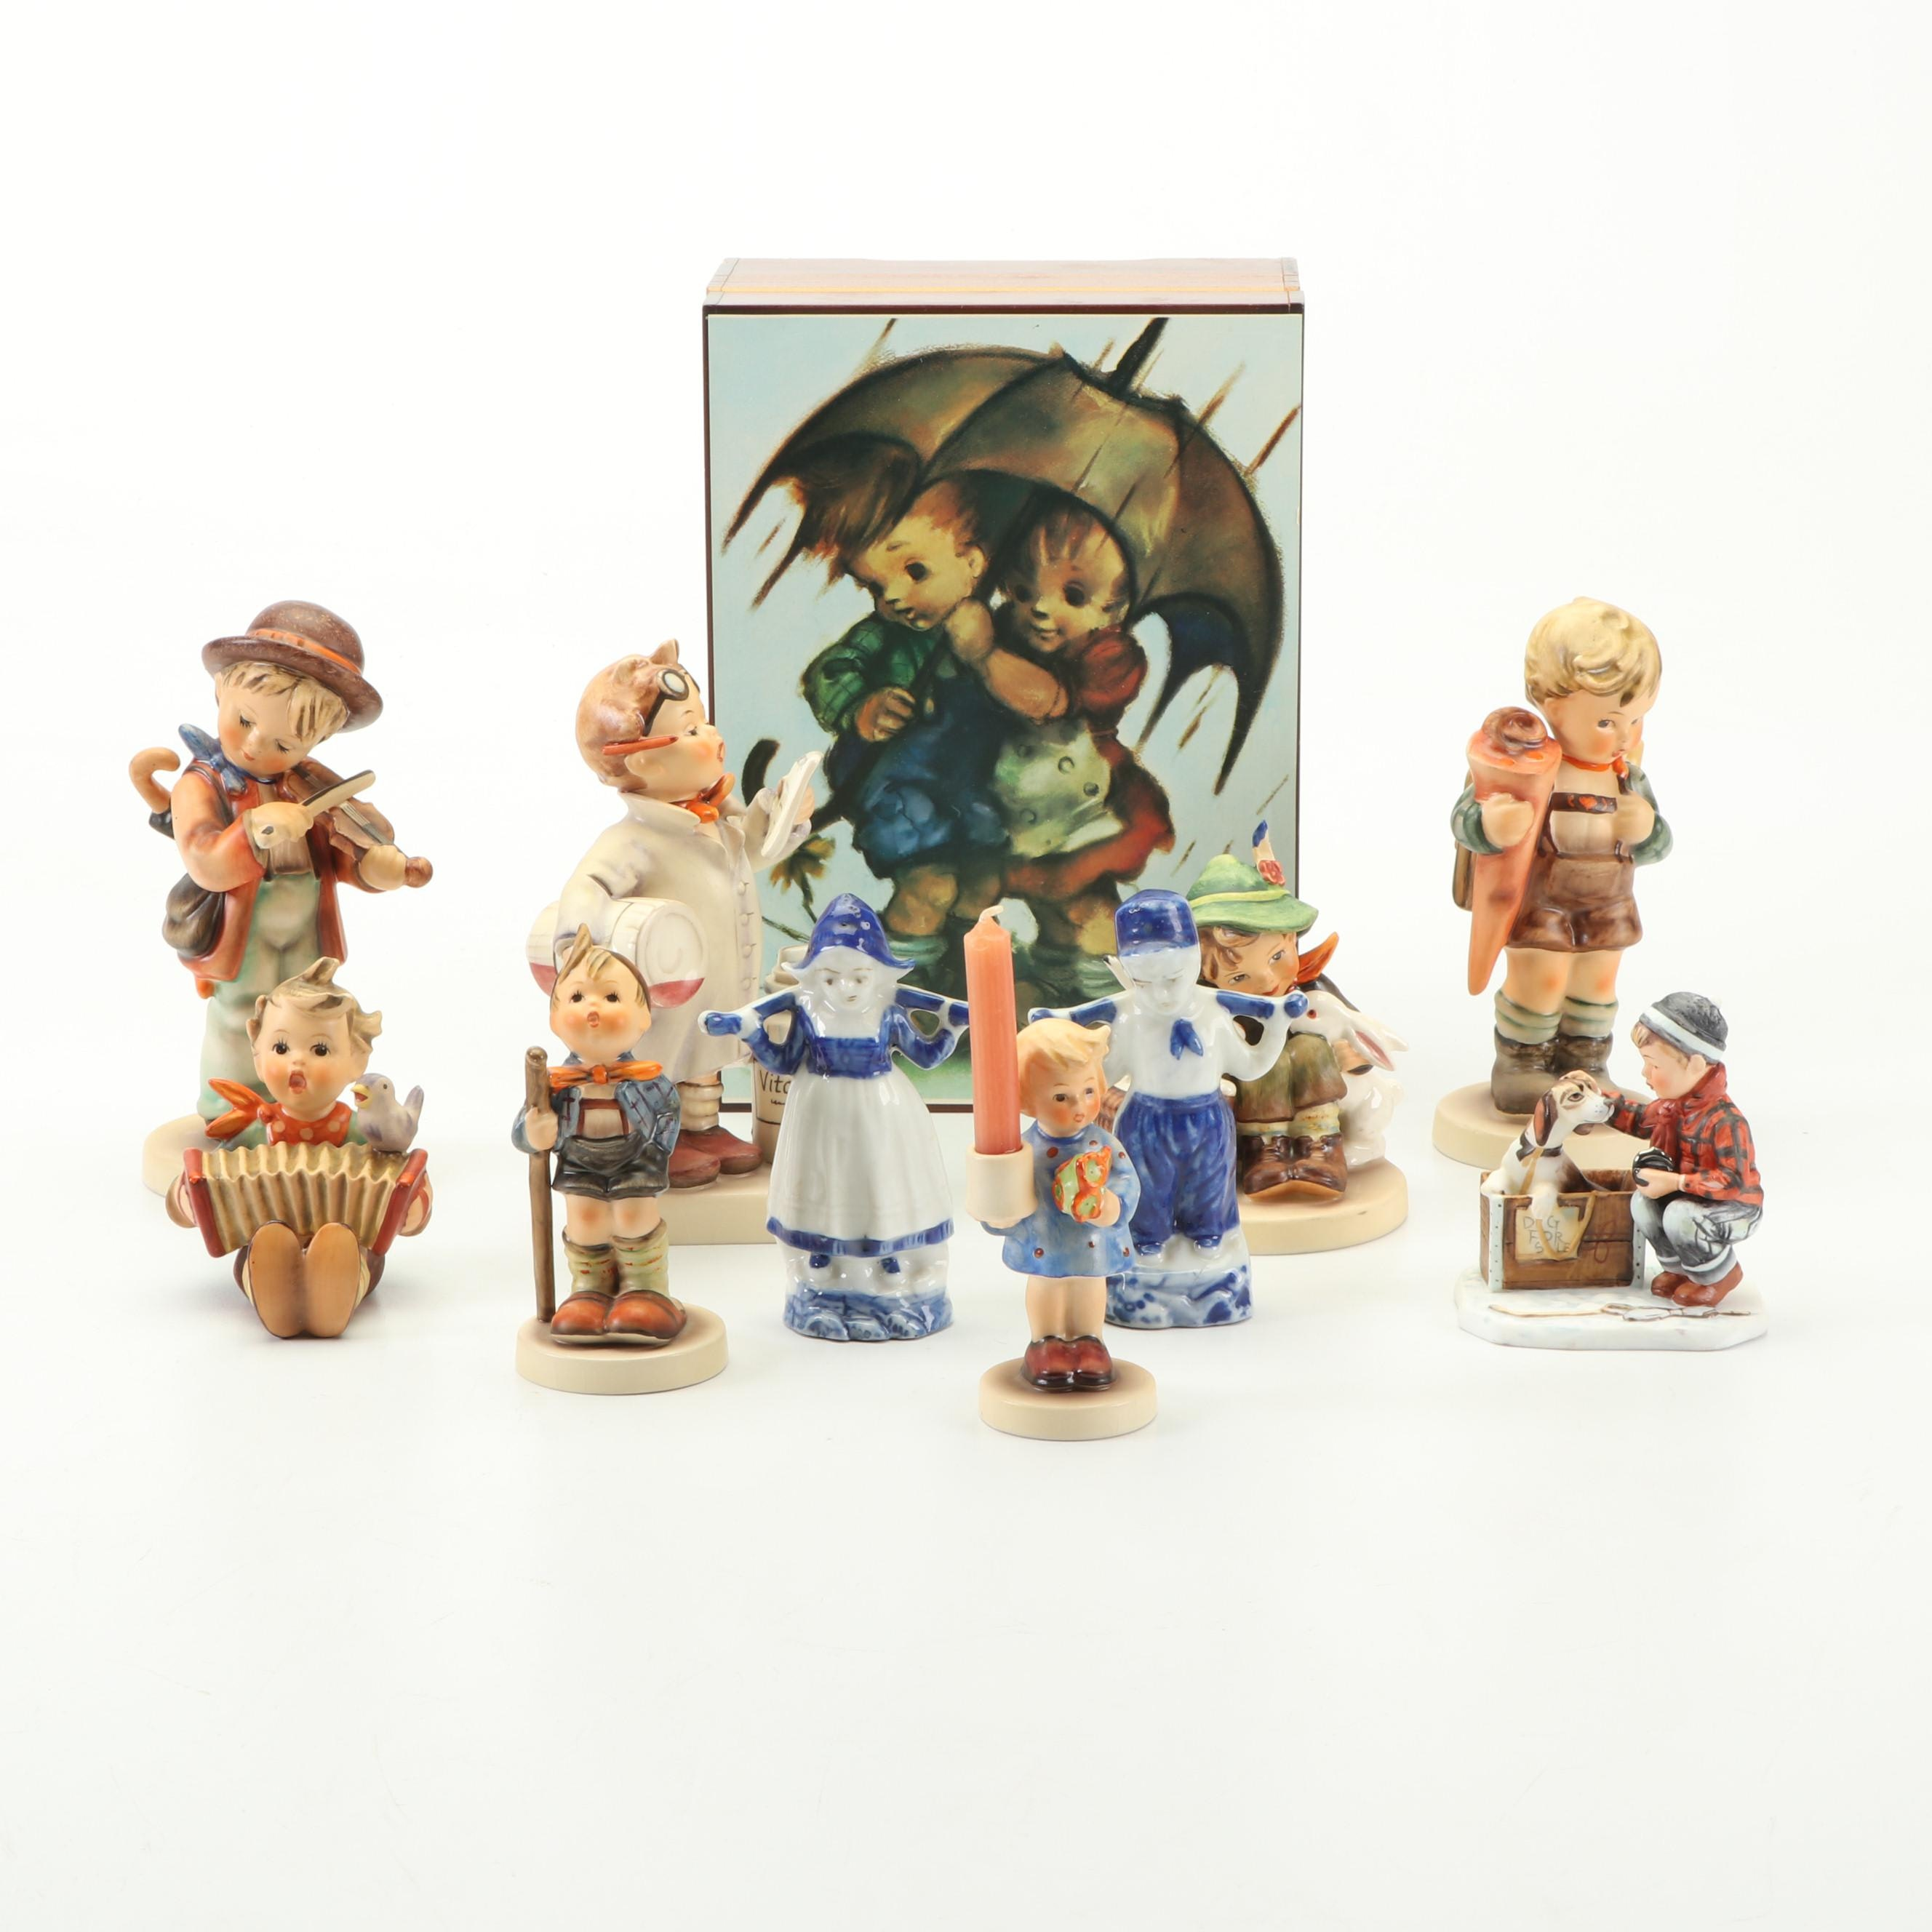 Vintage Hummel Music Box and Figurines with Other Porcelain Figurines